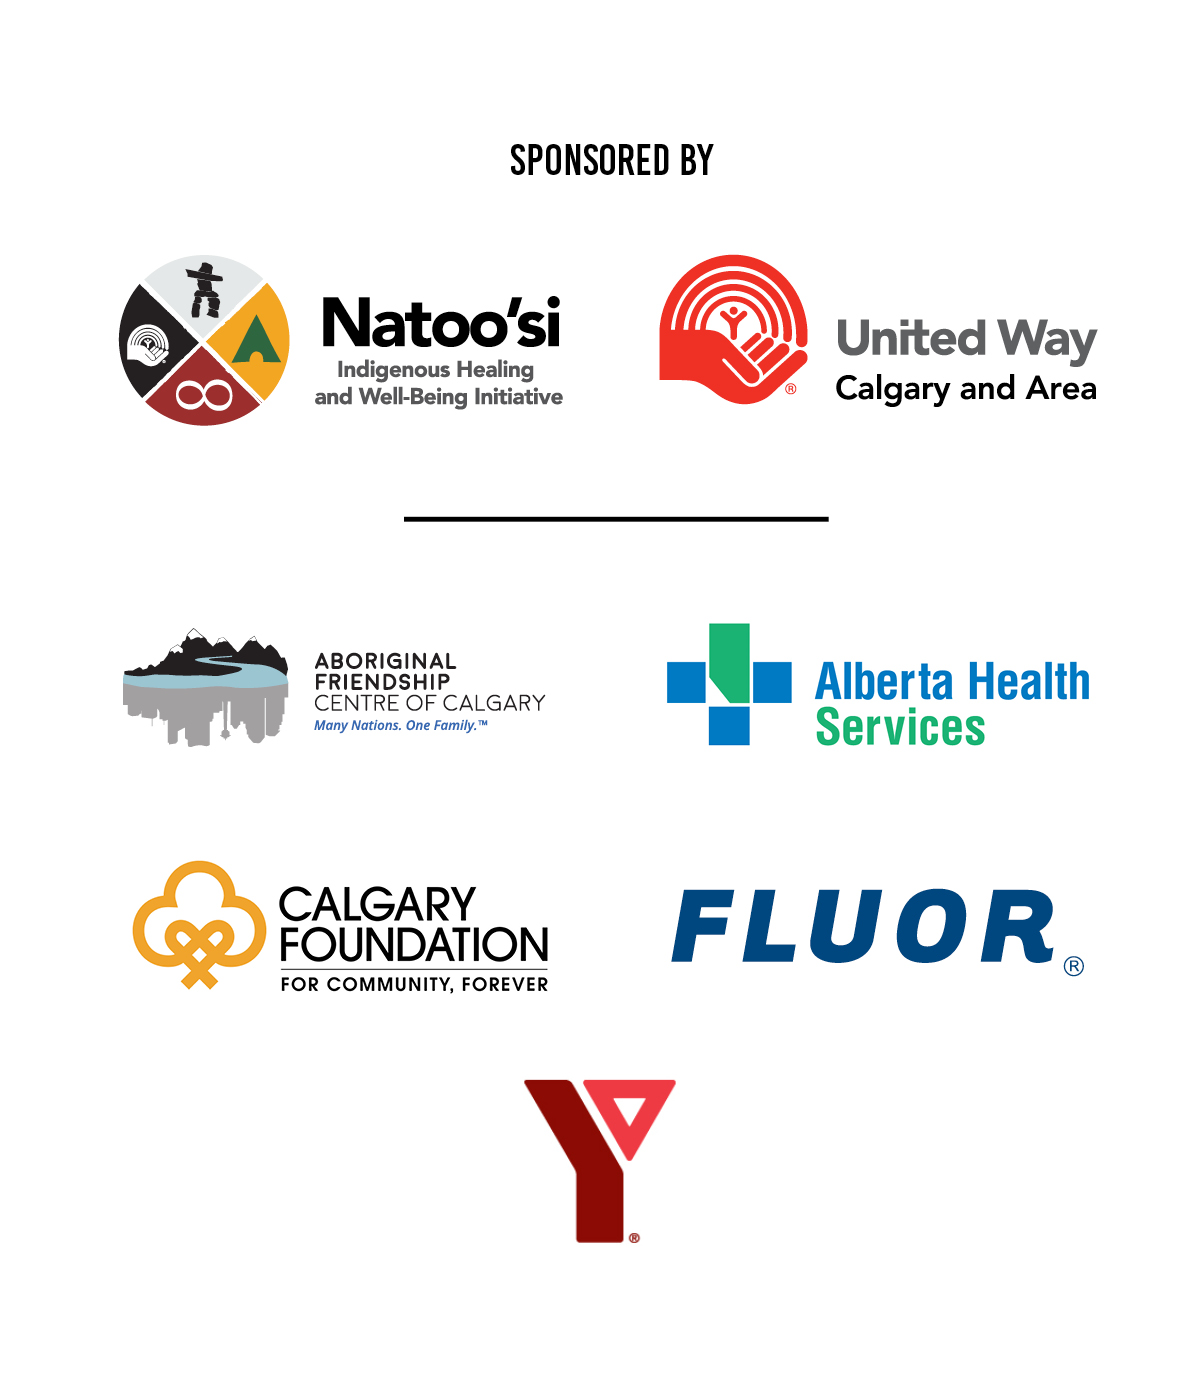 Sponsored by Natoo'si, United Way of Calgary and Area, Aboriginal Friendship Centre of Calgary, Alberta Health Services, Calgary Foundation, Fluor, and YMCA Calgary.